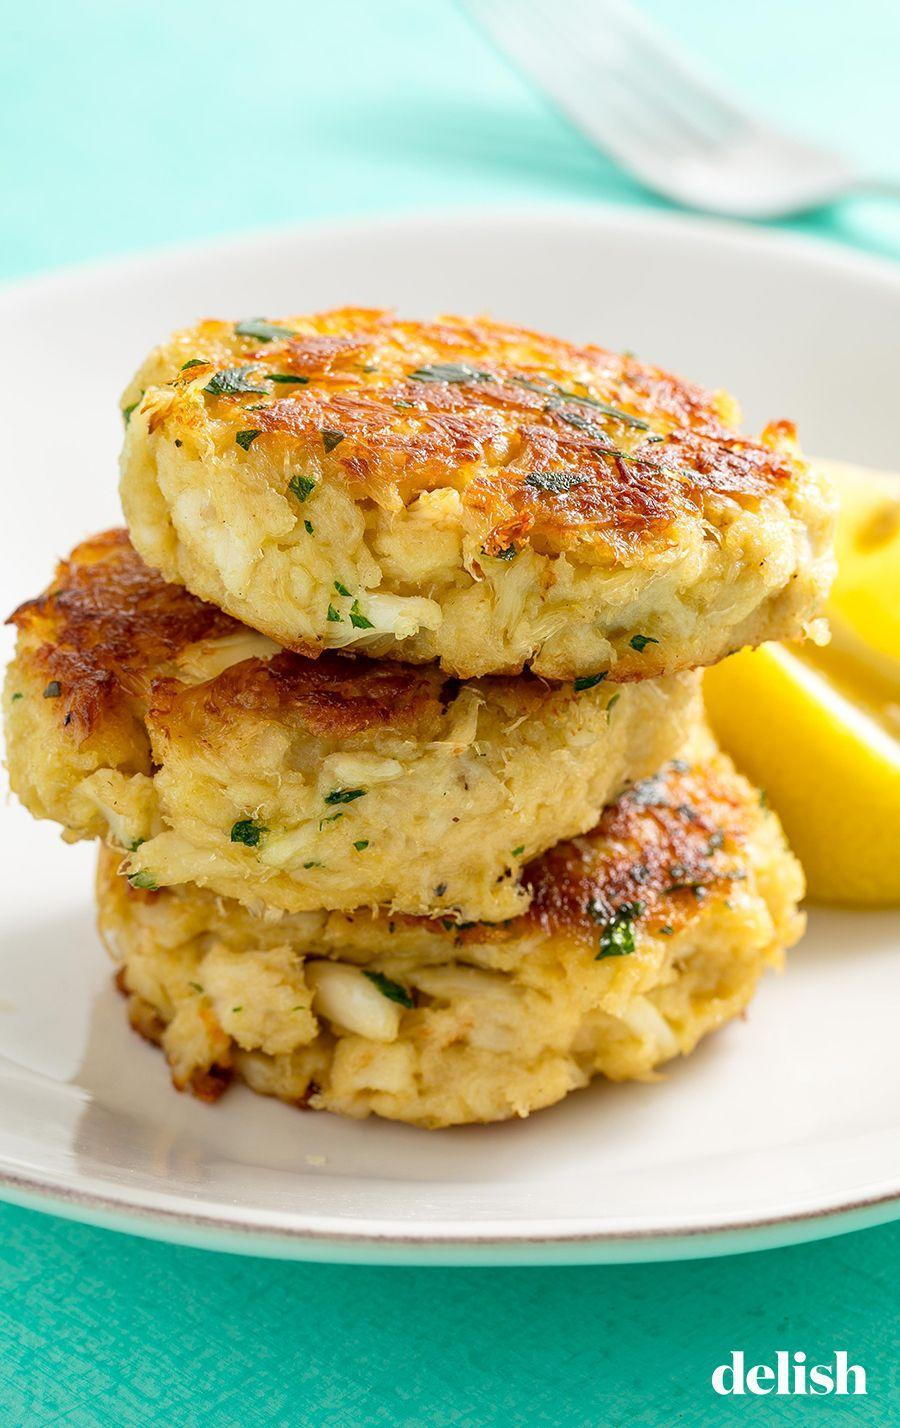 """<p>We promise they're easier to whip up than you'd expect! </p><p>Get the recipe from <a href=""""https://www.delish.com/cooking/recipe-ideas/recipes/a58704/best-crab-cakes-recipe/"""" rel=""""nofollow noopener"""" target=""""_blank"""" data-ylk=""""slk:Delish"""" class=""""link rapid-noclick-resp"""">Delish</a>.</p>"""